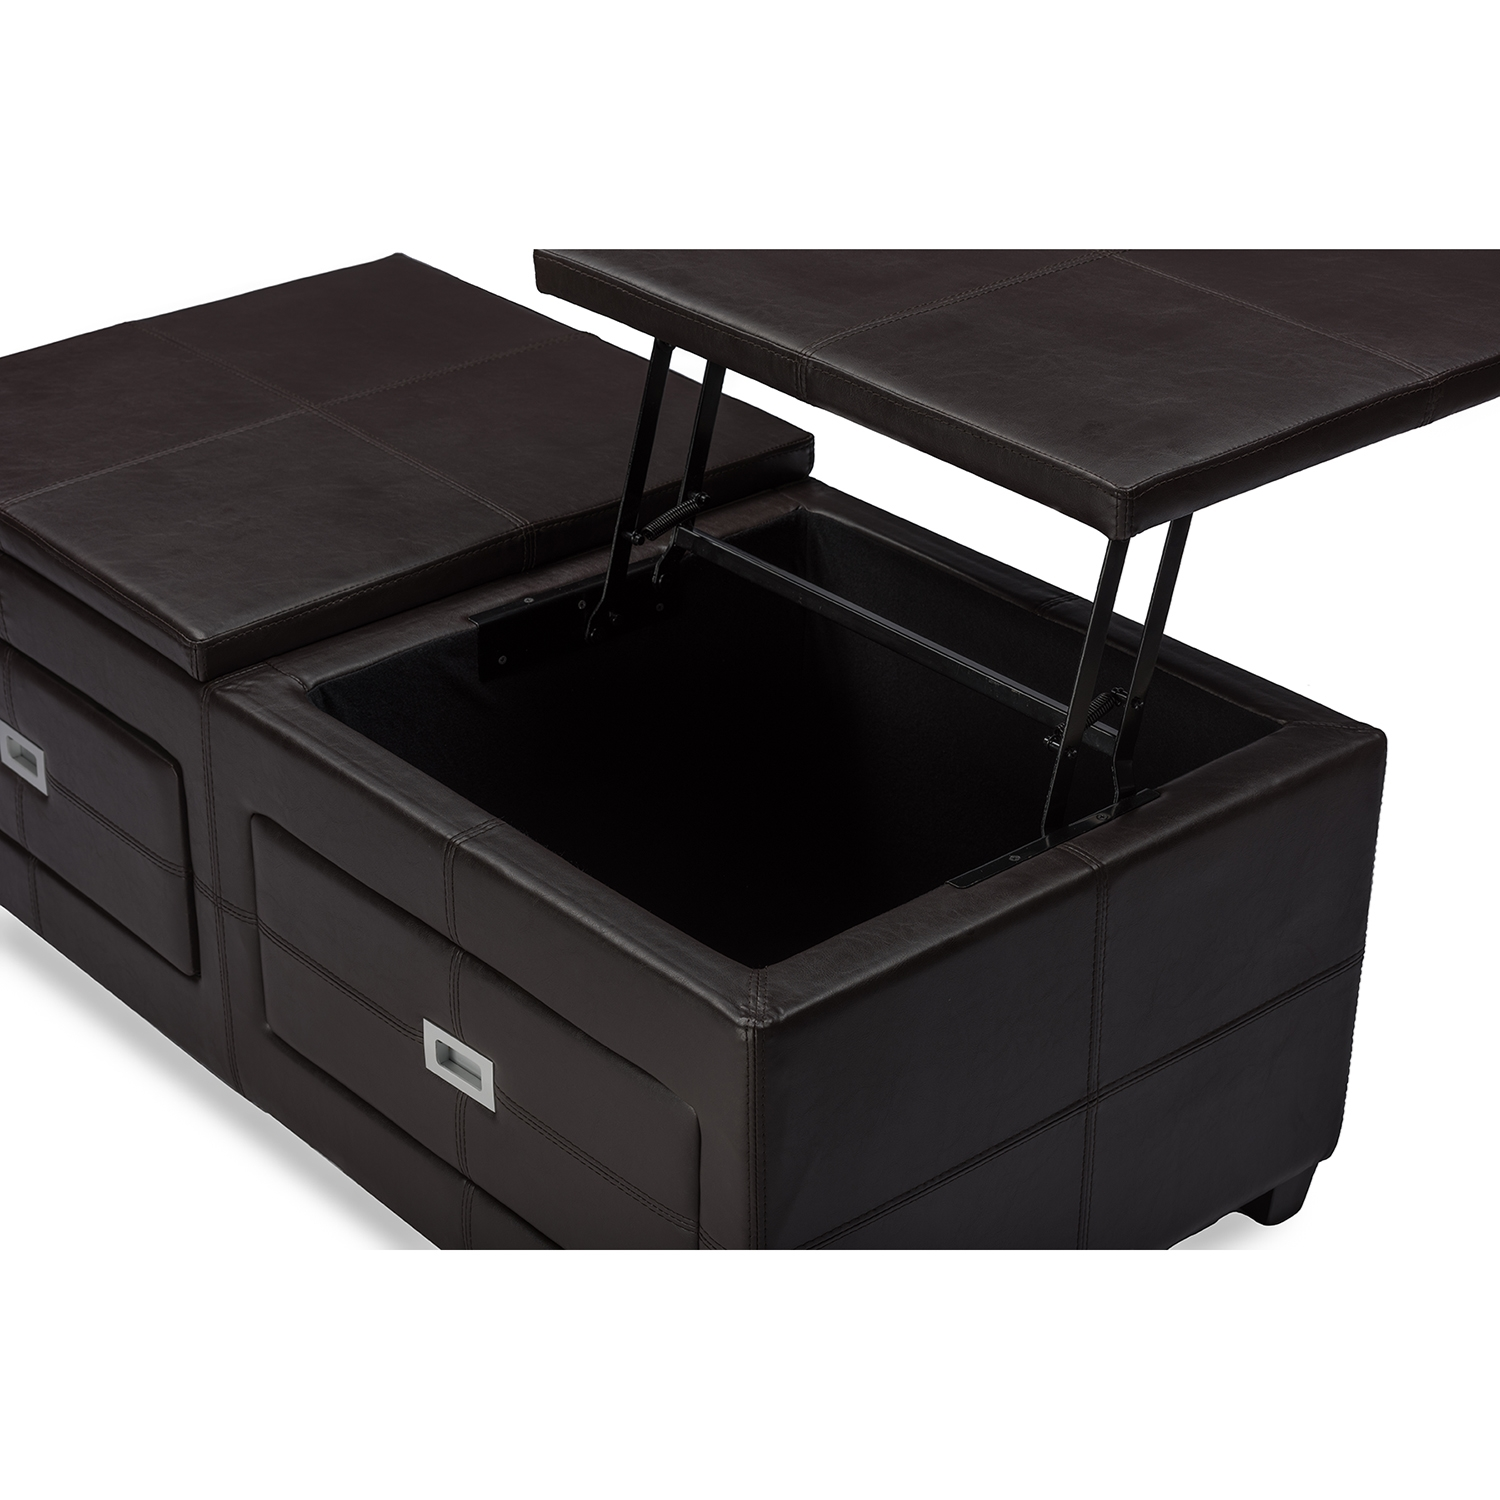 storage cocktail ottoman. Baxton Studio Indy Modern And Contemporary Functional Lift-top Cocktail Ottoman Table With Storage Drawers